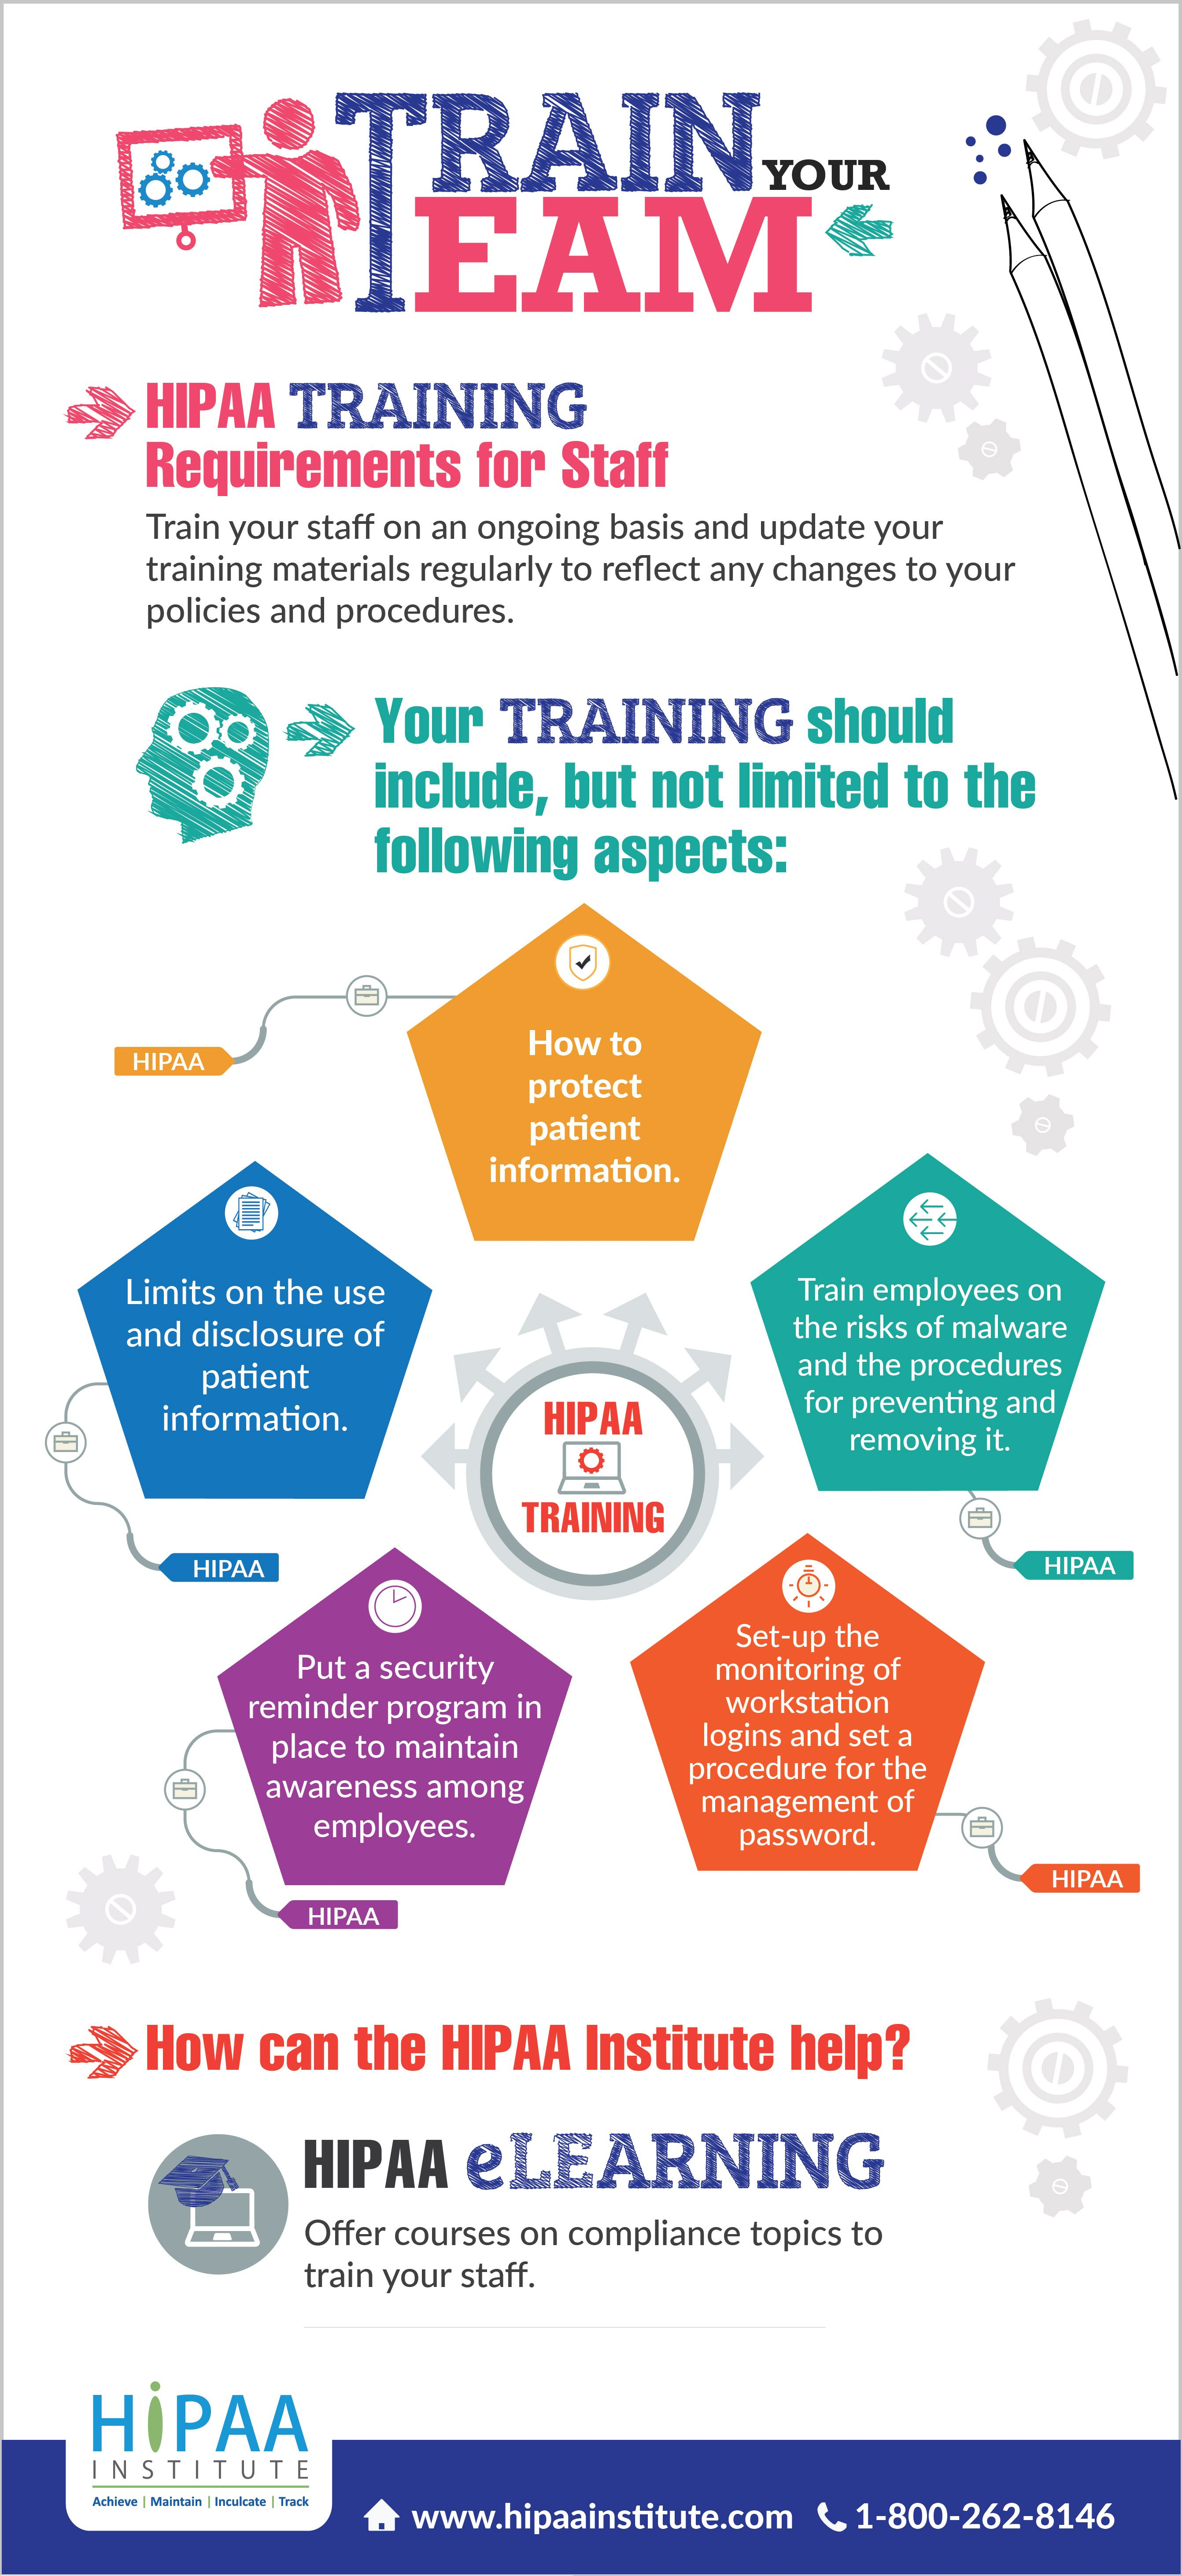 HIPAA training requirements for your staff you must know